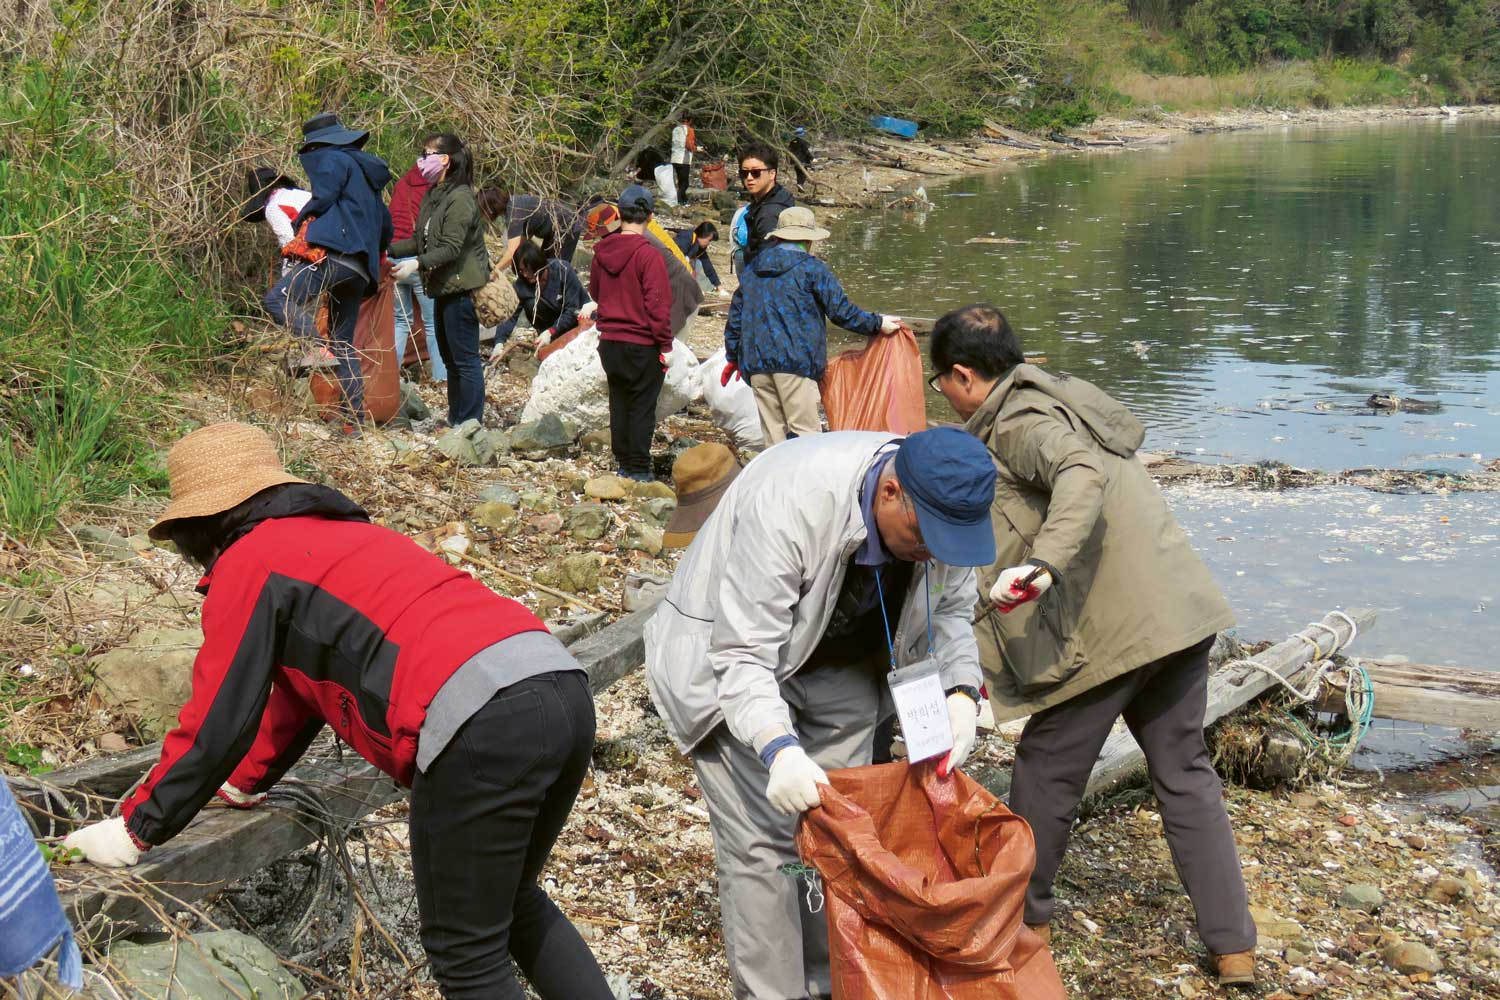 All are welcome. Later this year, hundreds of volunteers will be needed to collect pollutants from South Korea's Hangang River. Check Seoul KFEM's digital channels for more details.